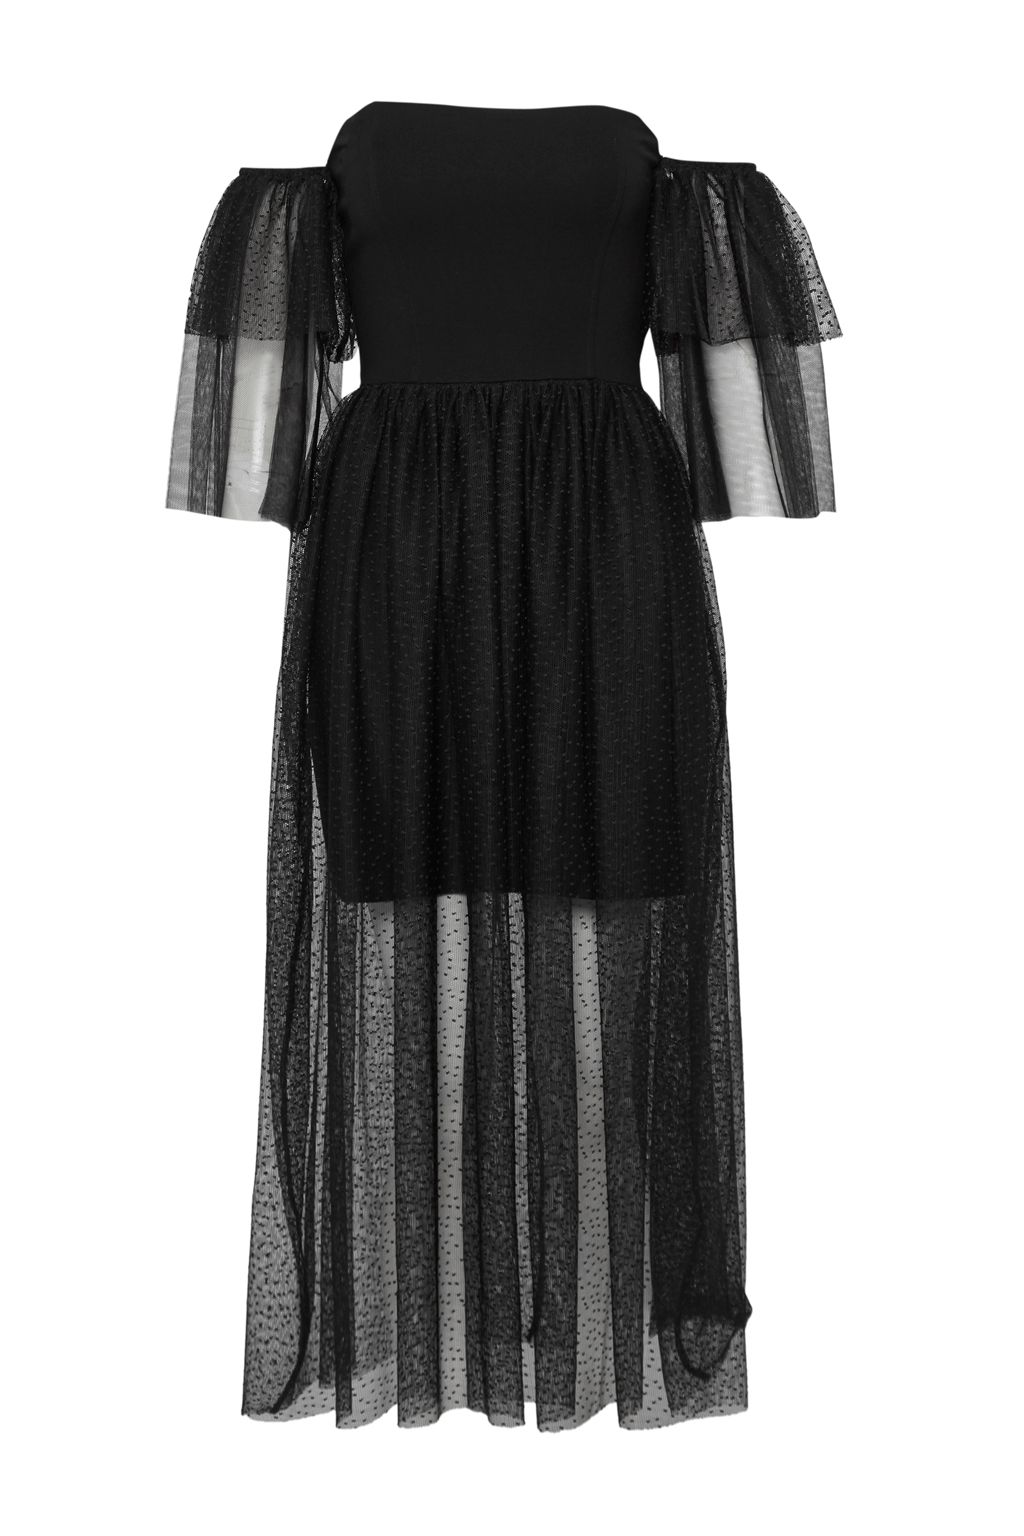 French Connection Valentin Sheer Jersey Off Shoulder Midi Dress, Black